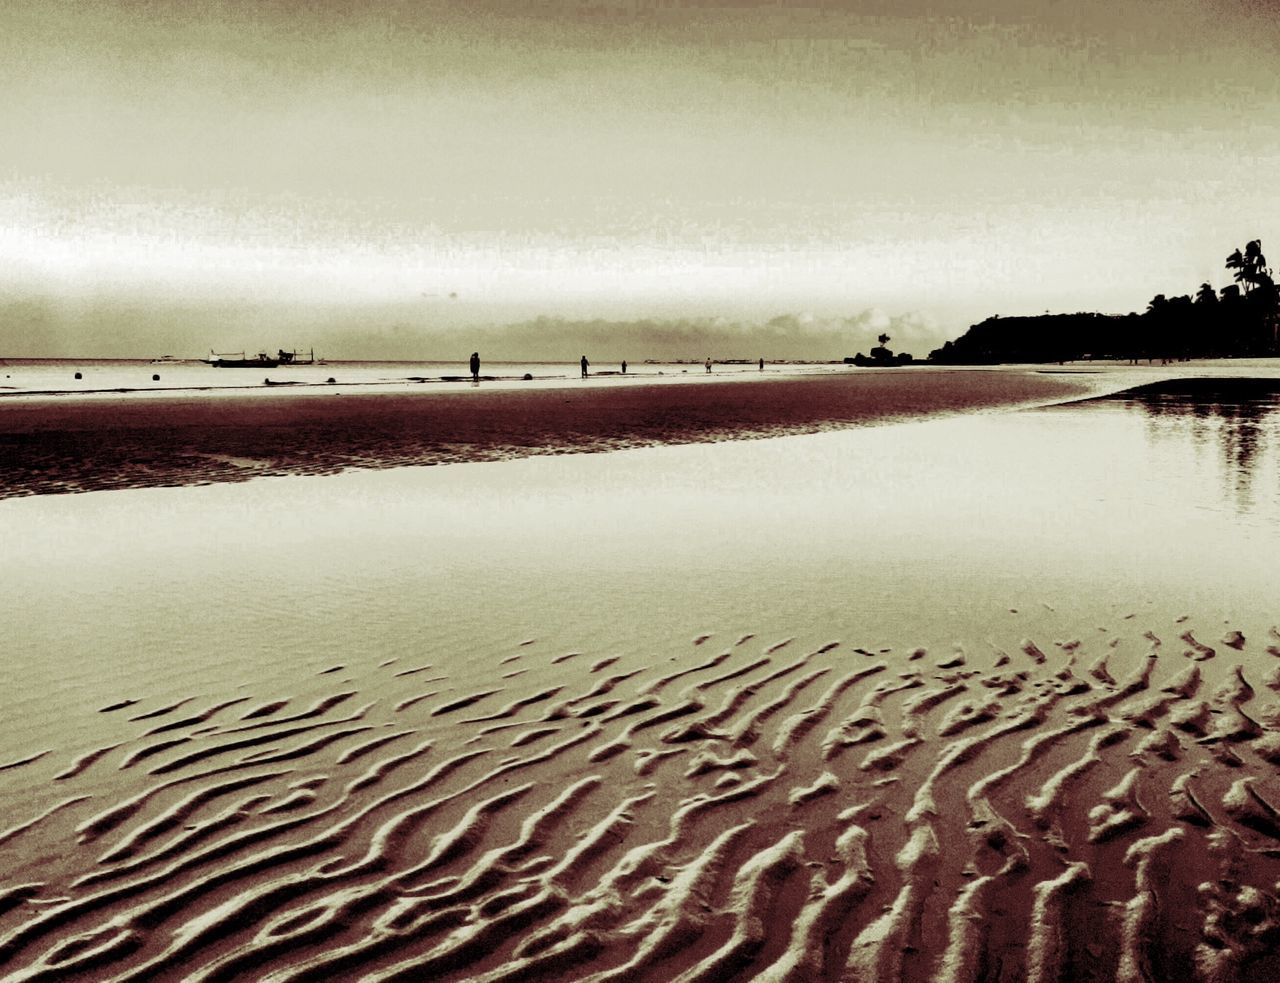 sand, water, beach, nature, outdoors, tranquility, sea, beauty in nature, tranquil scene, day, scenics, no people, sky